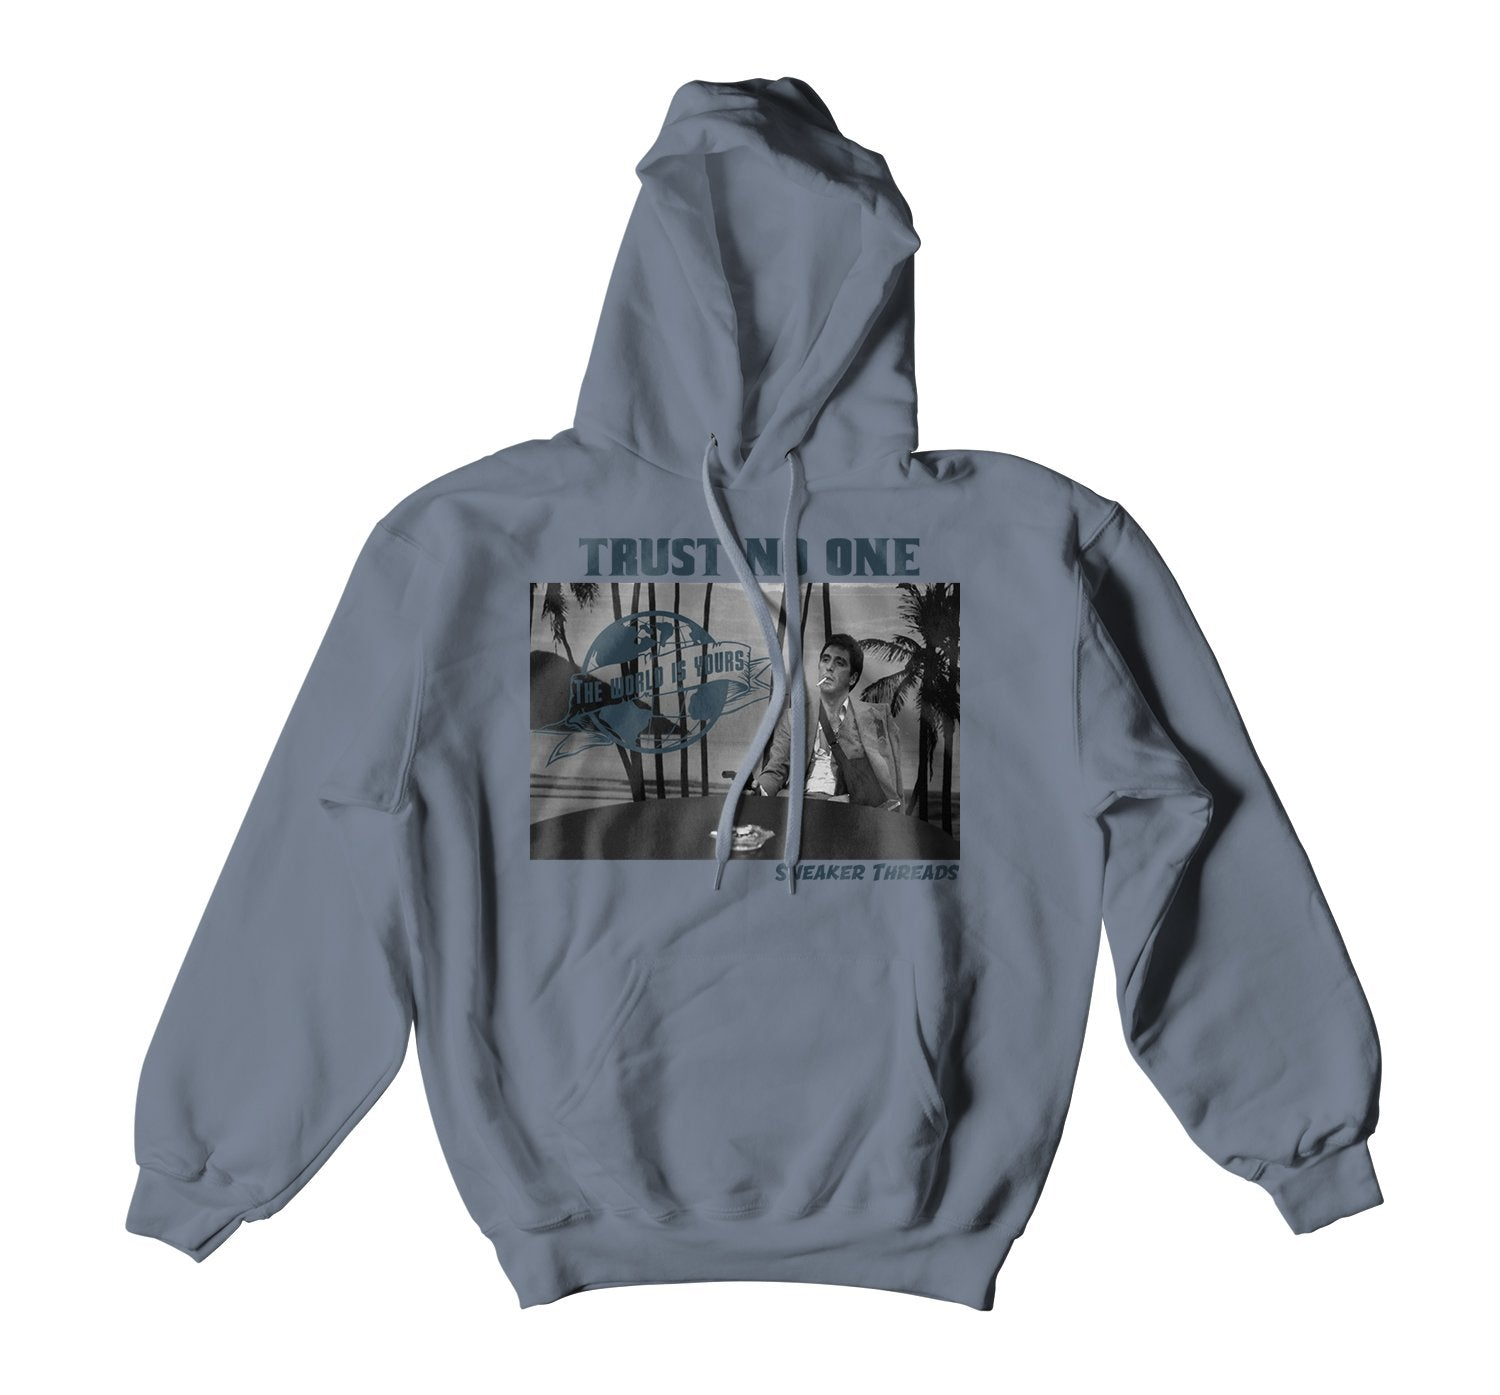 Scarface Hoody to match perfect with fit for Yeezy 700 Teal Blue